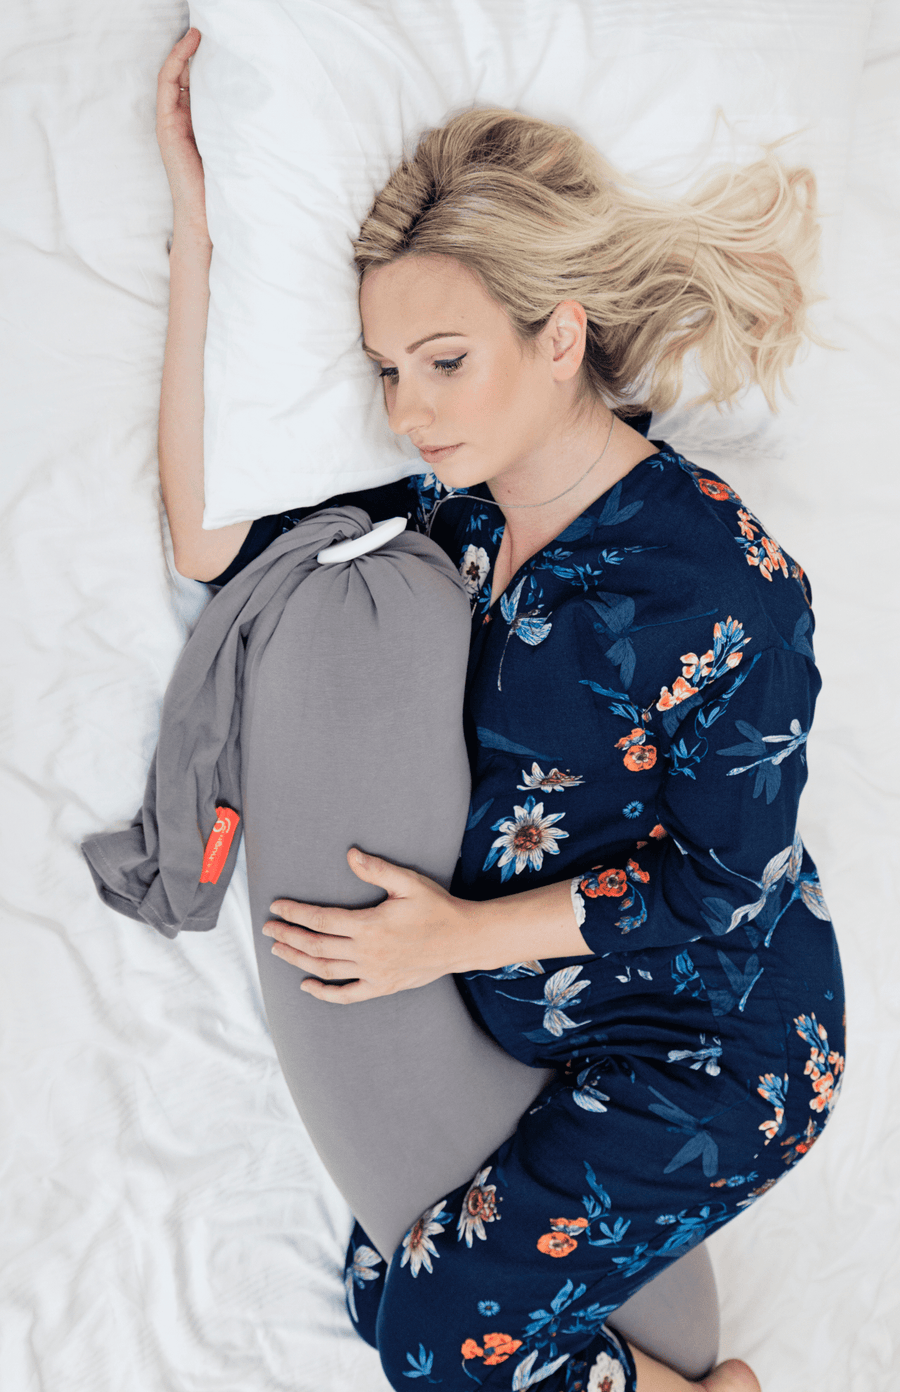 bbhugme Pregnancy Pillow - Grey/Plum